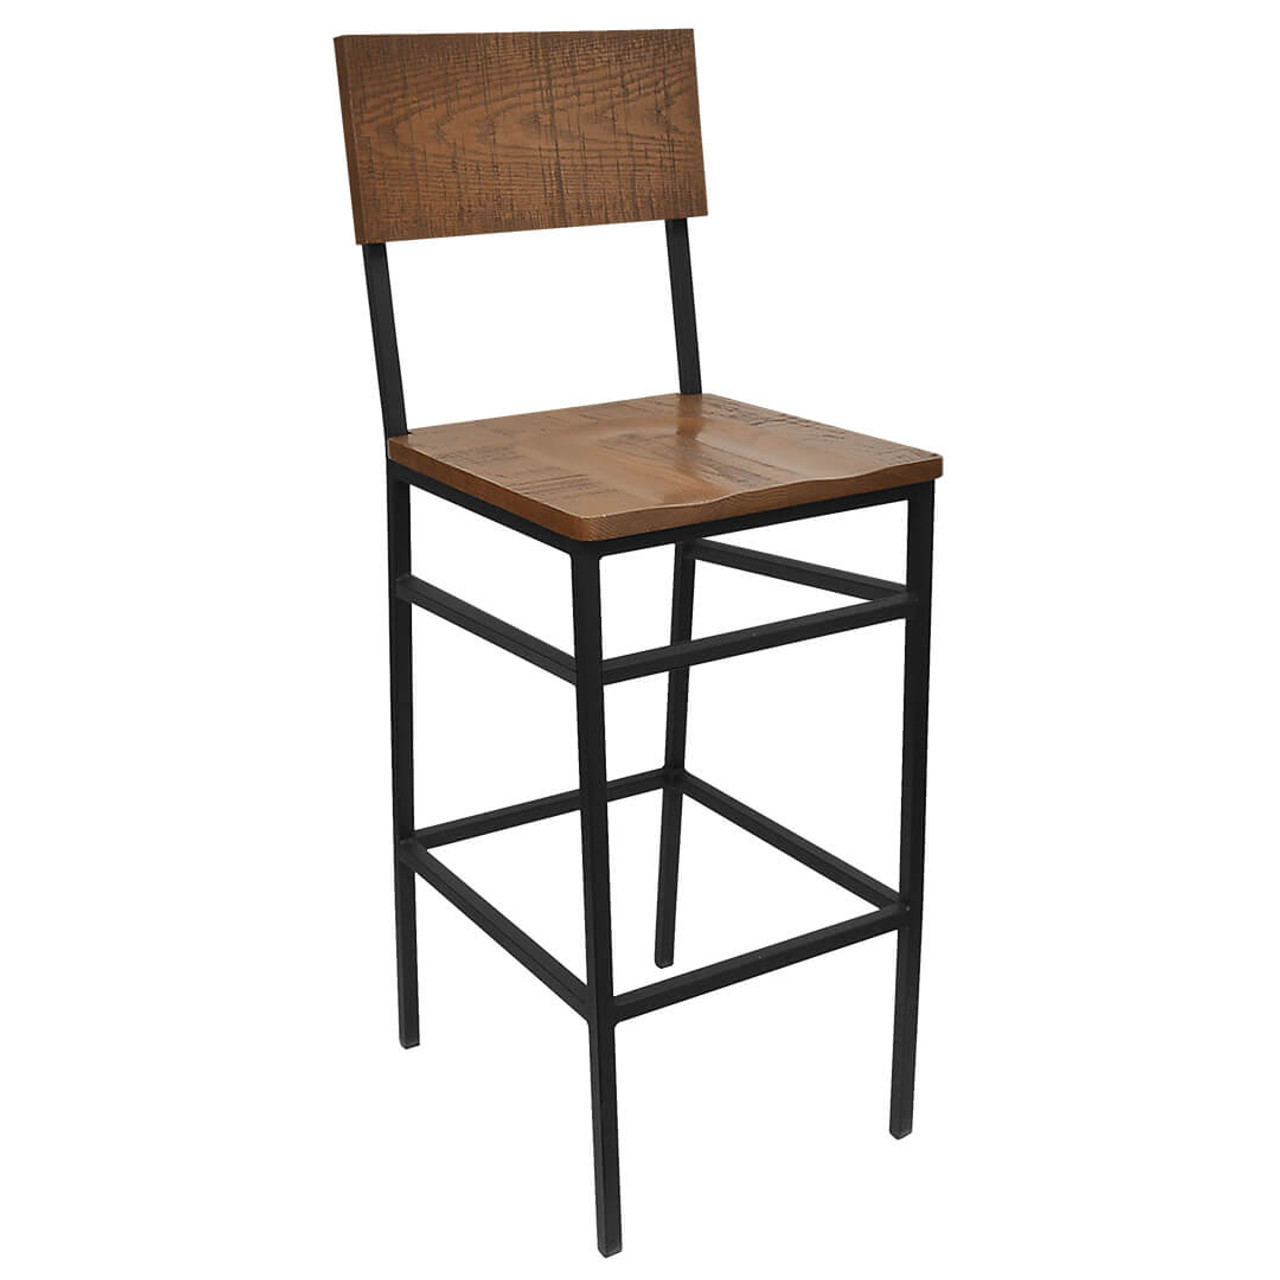 Image of: Henry Collection Steel Bar Stool W Distressed Wood Seat And Back